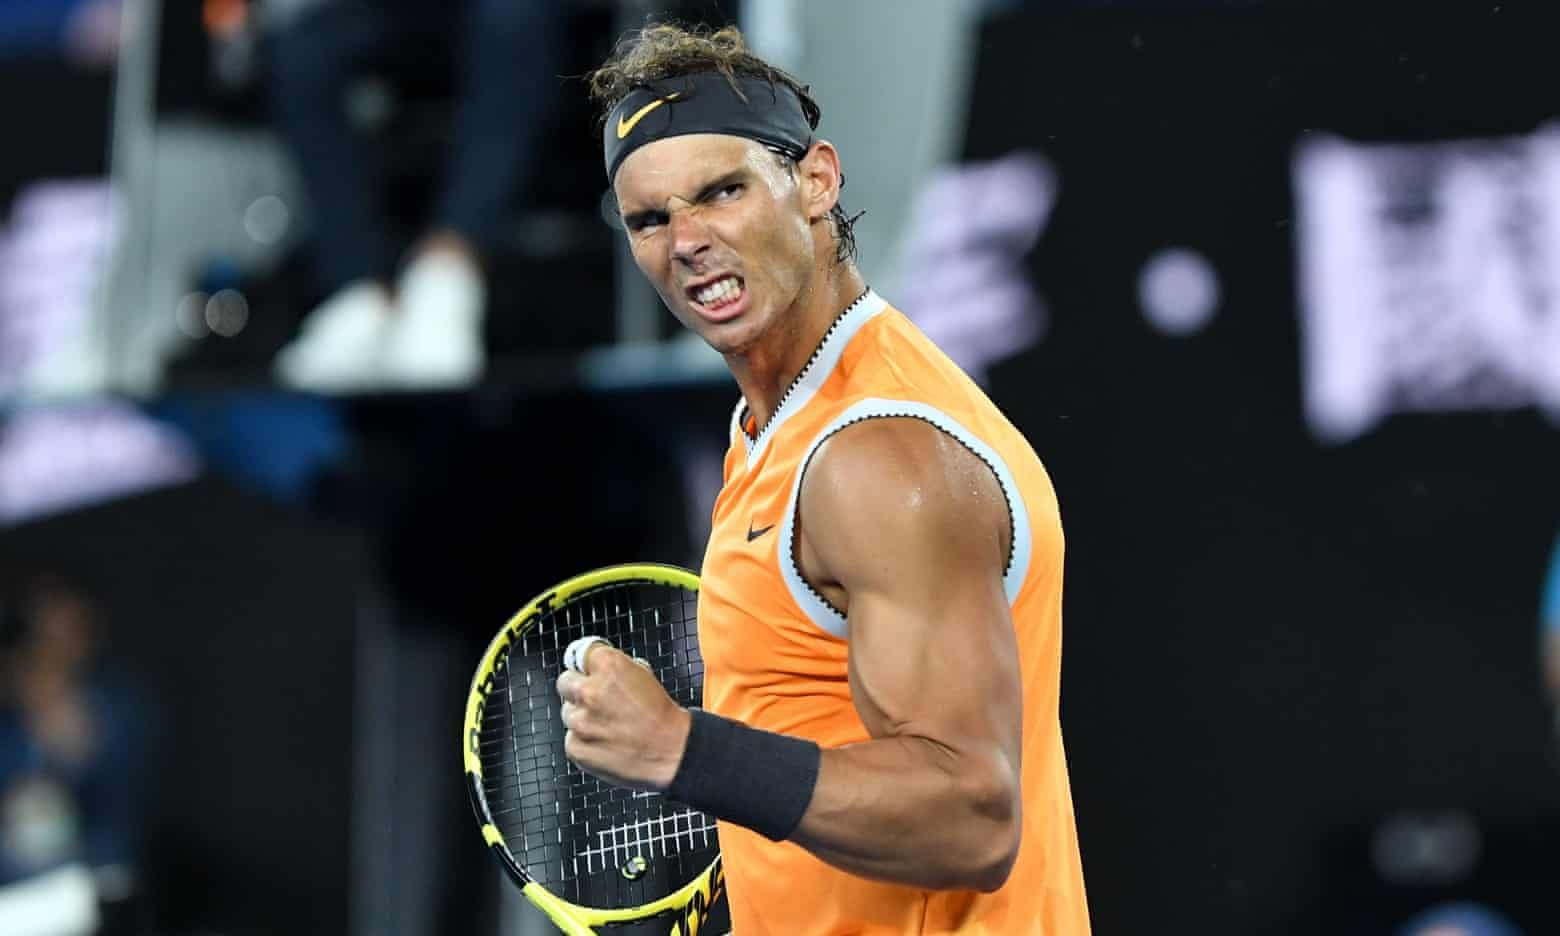 Rafael Nadal Celebrates During His Crushing Win Over The American Frances Tiafoe In The Australian Open Quarter Finals Rafael Nadal Tennis Lessons Tennis Team